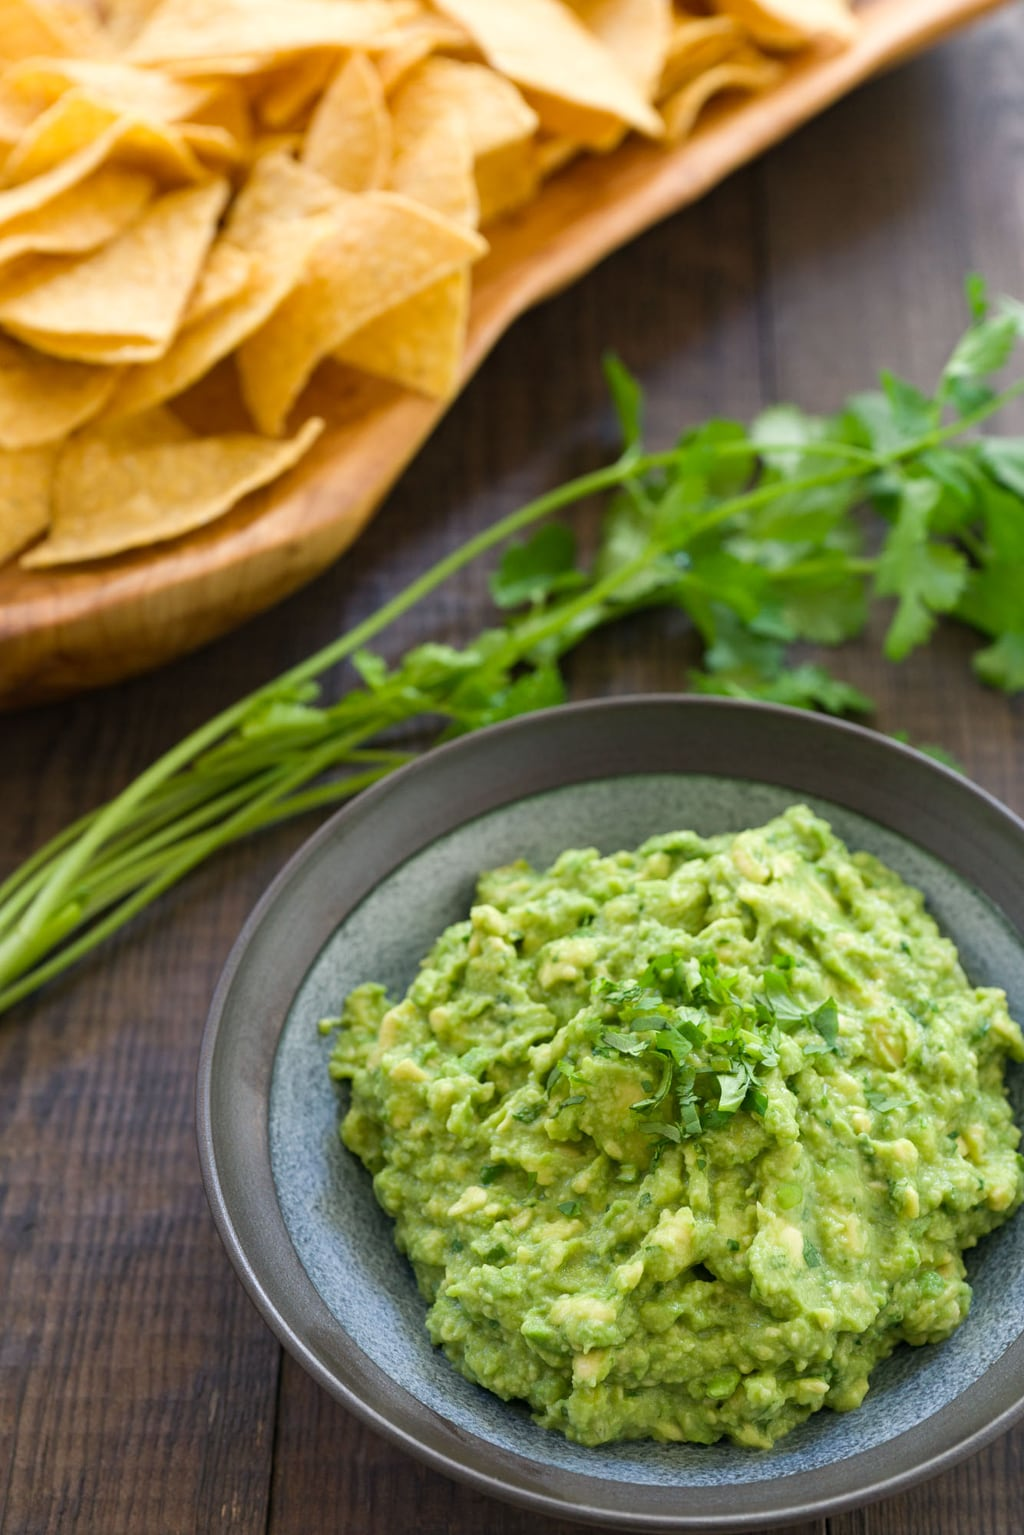 The best guacamole only requires 5 basic ingredients and less than 5 minutes to make.